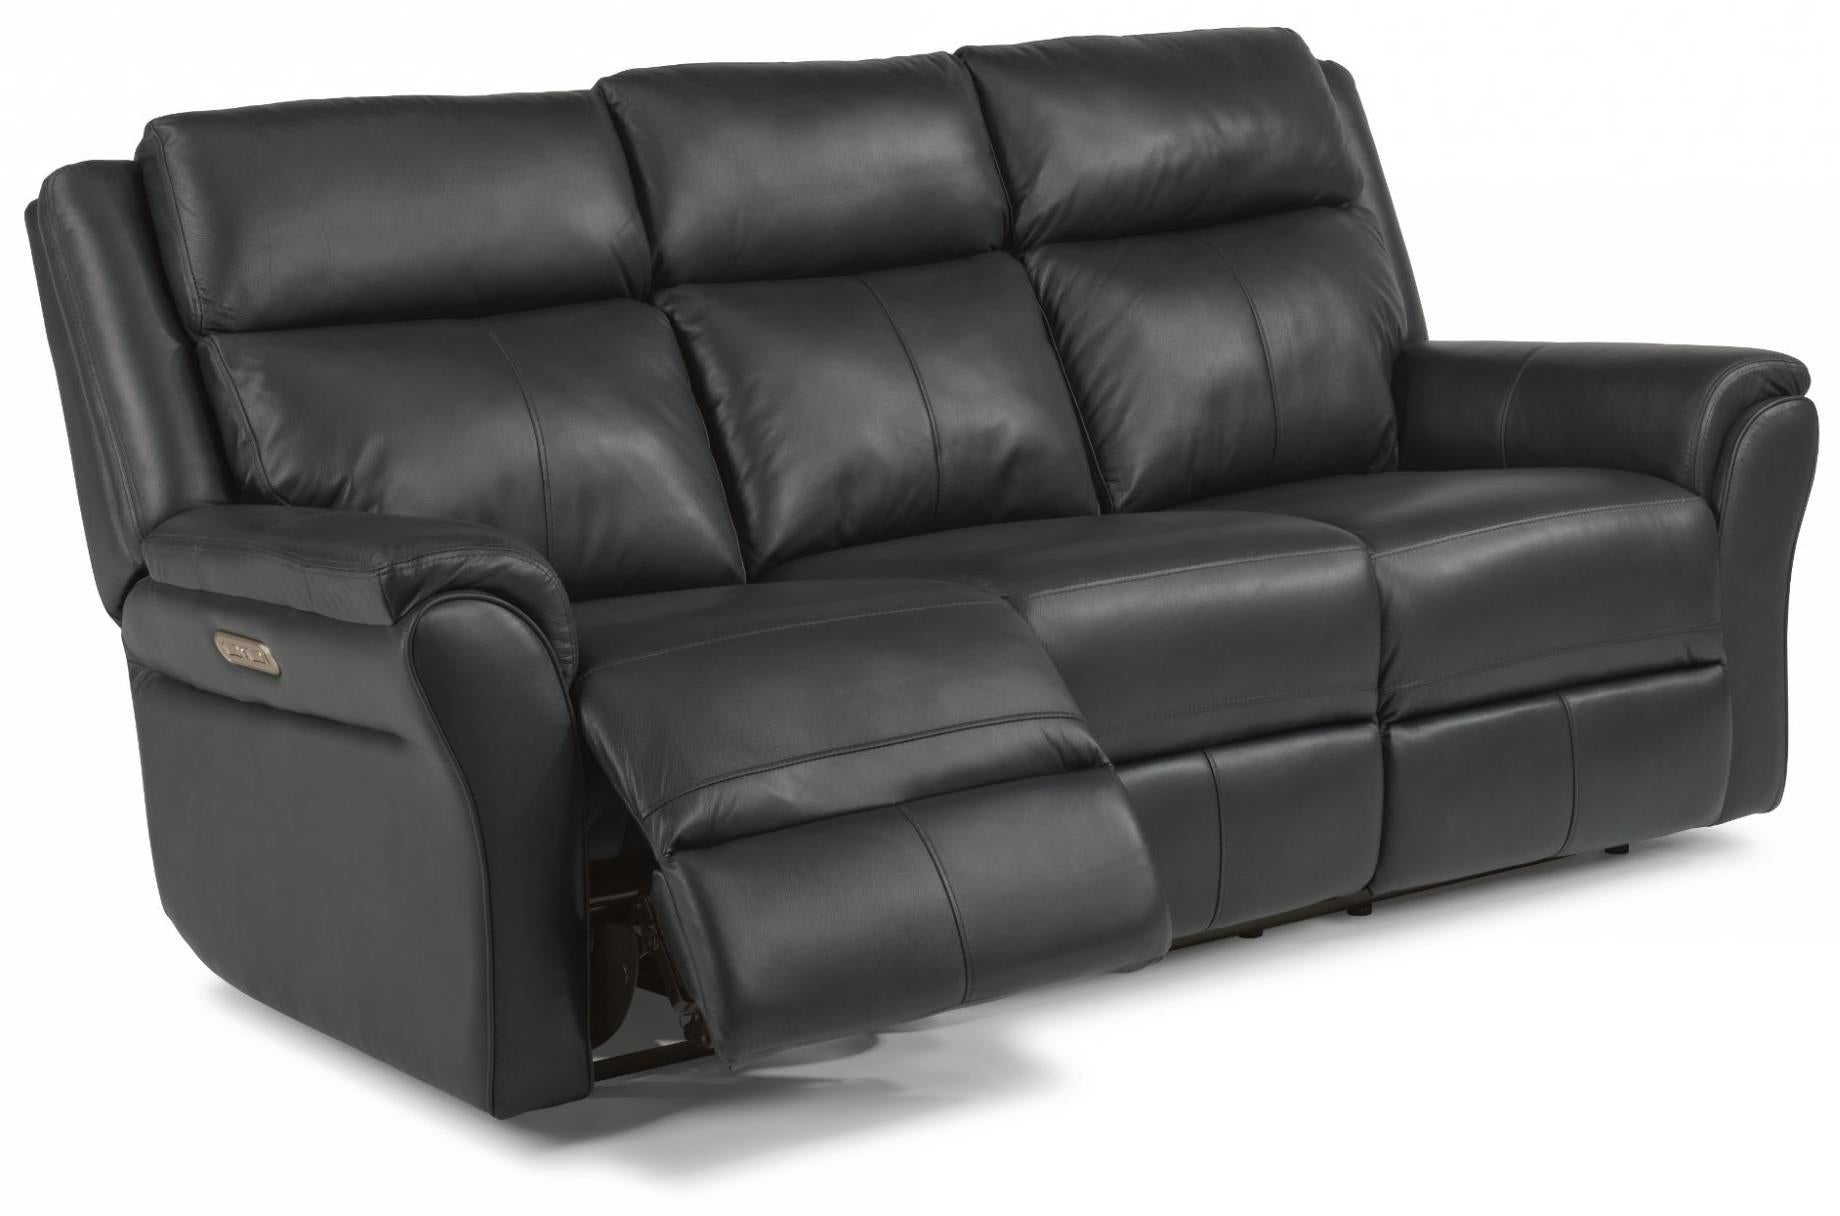 Pike Power Recliner Sofa Cover 638 60 Sofa With Power Headrest